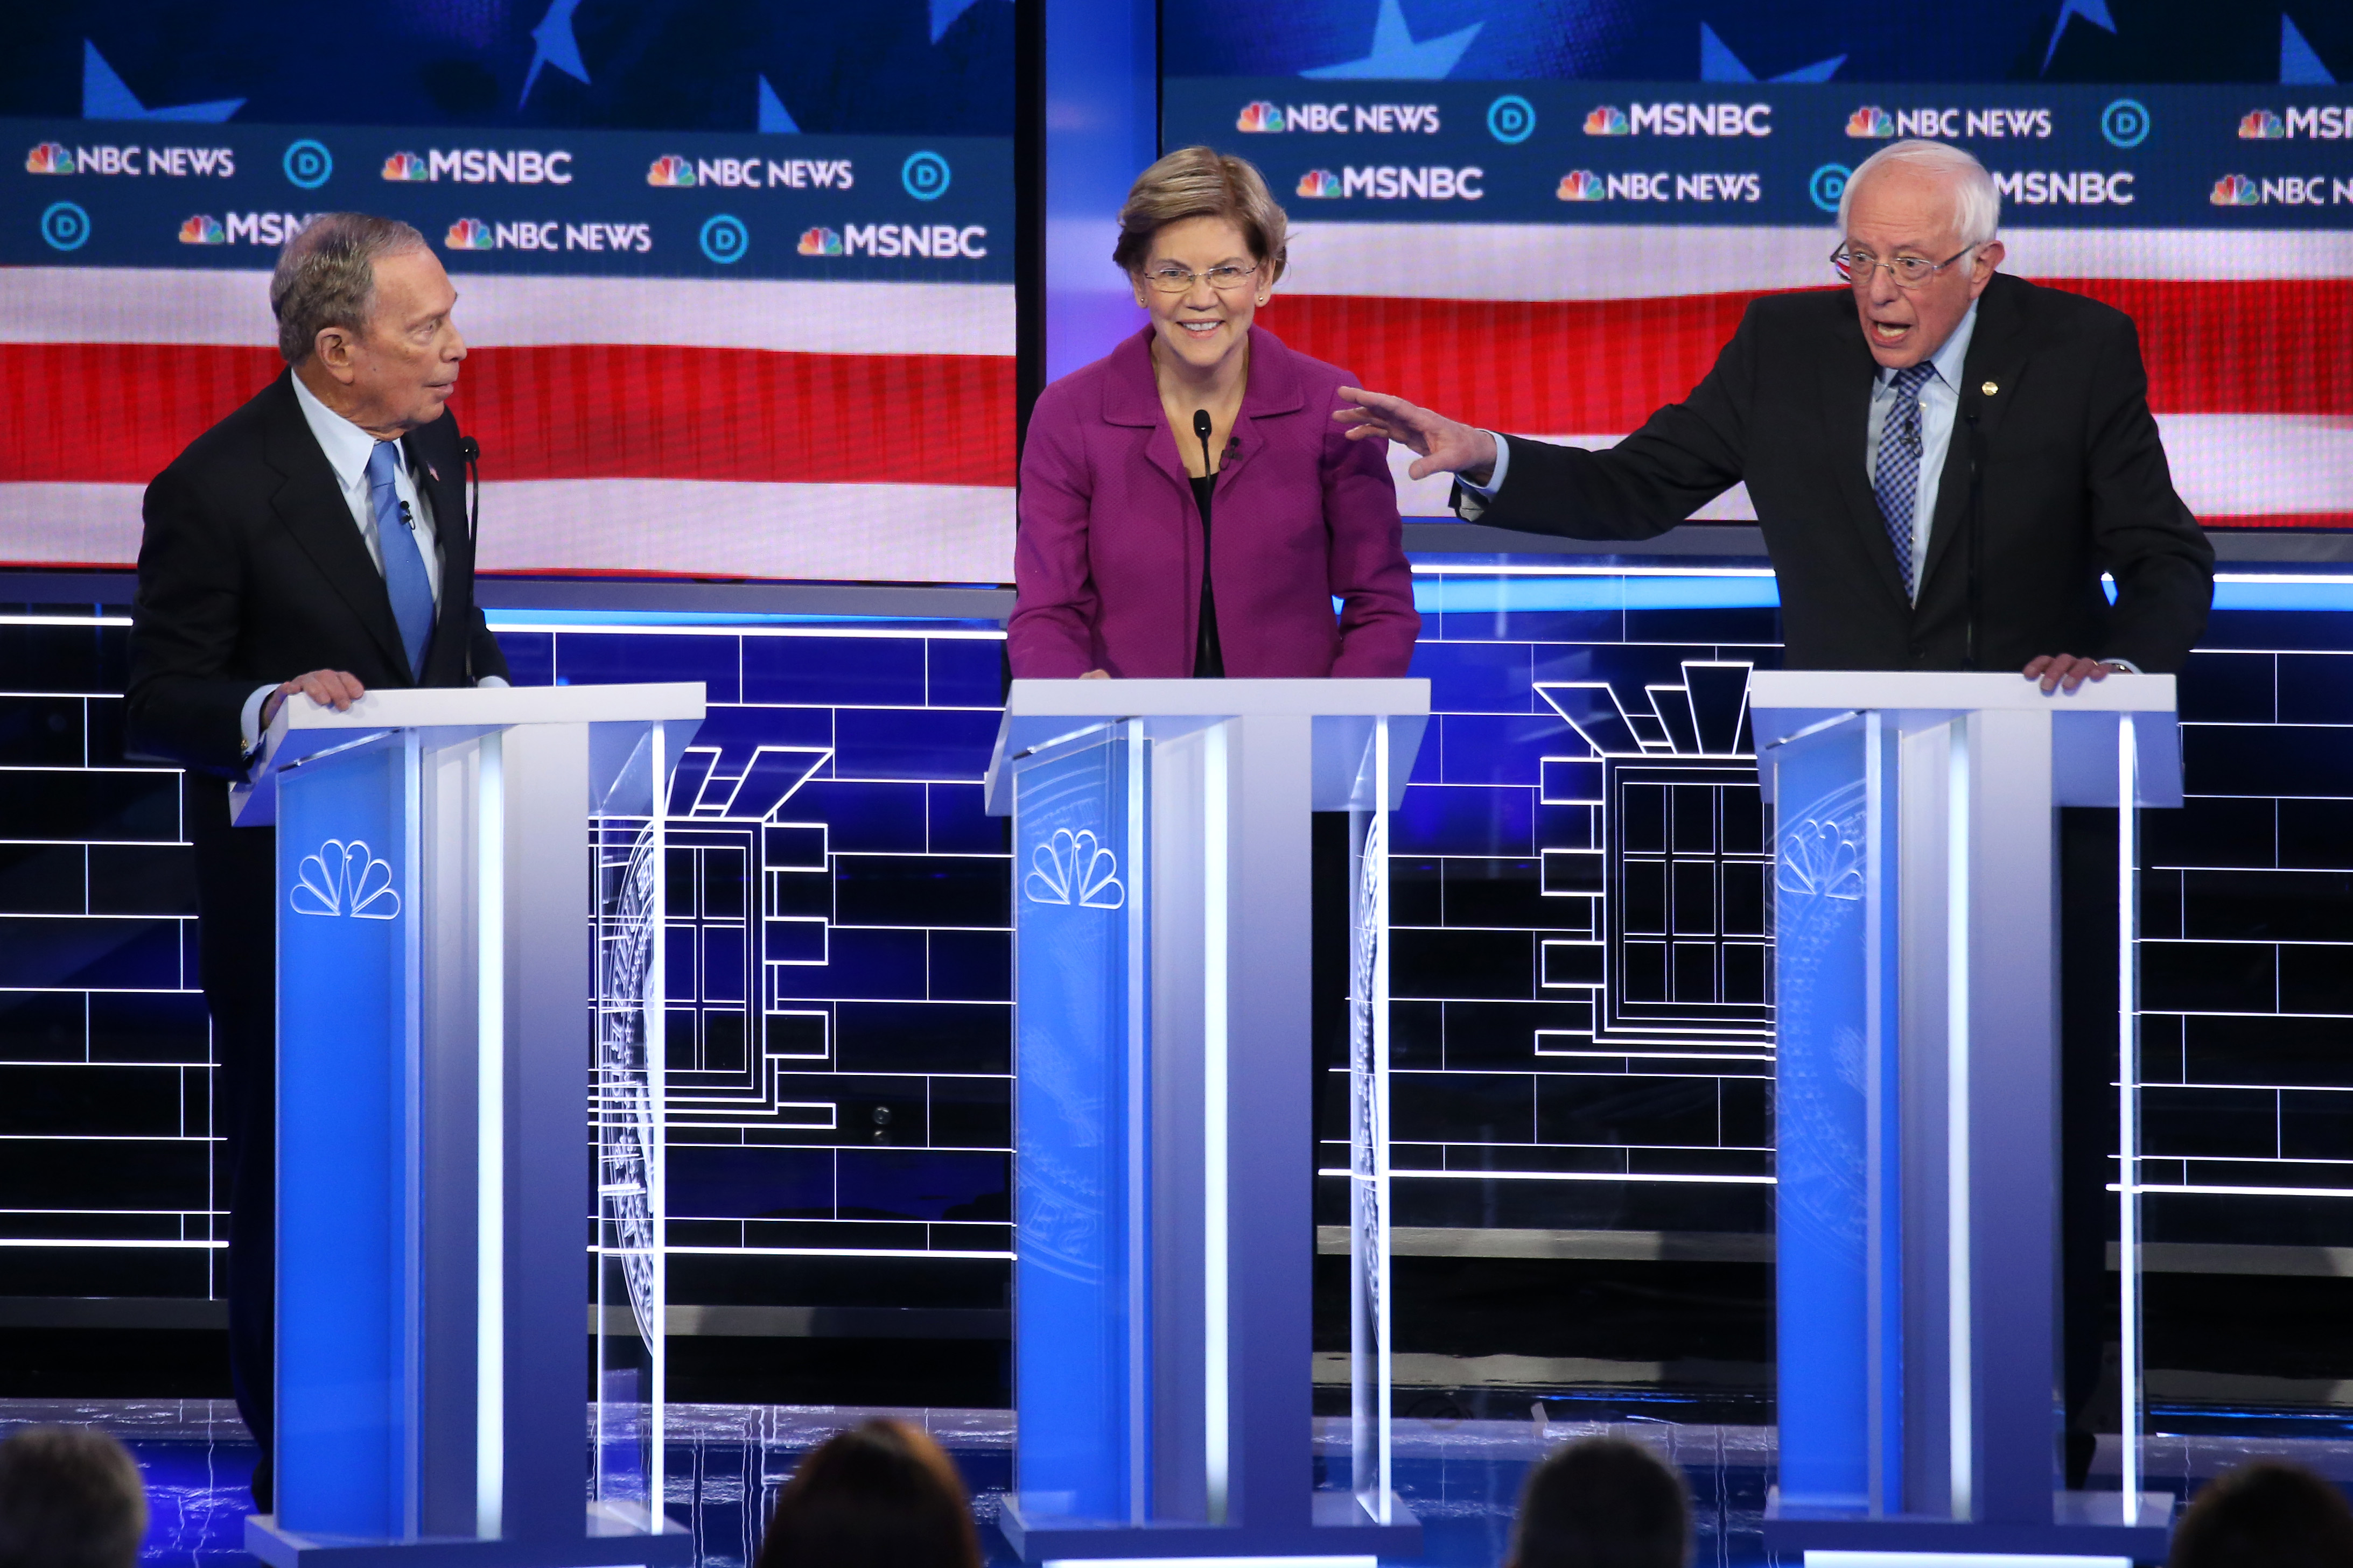 LAS VEGAS, NEVADA - FEBRUARY 19: Democratic presidential candidates former New York City mayor Mike Bloomberg (L), and Sen. Elizabeth Warren (D-MA) listen as Sen. Bernie Sanders (I-VT) makes a point during the Democratic presidential primary debate at Paris Las Vegas on February 19, 2020 in Las Vegas, Nevada. Six candidates qualified for the third Democratic presidential primary debate of 2020, which comes just days before the Nevada caucuses on February 22. (Photo by Mario Tama/Getty Images)